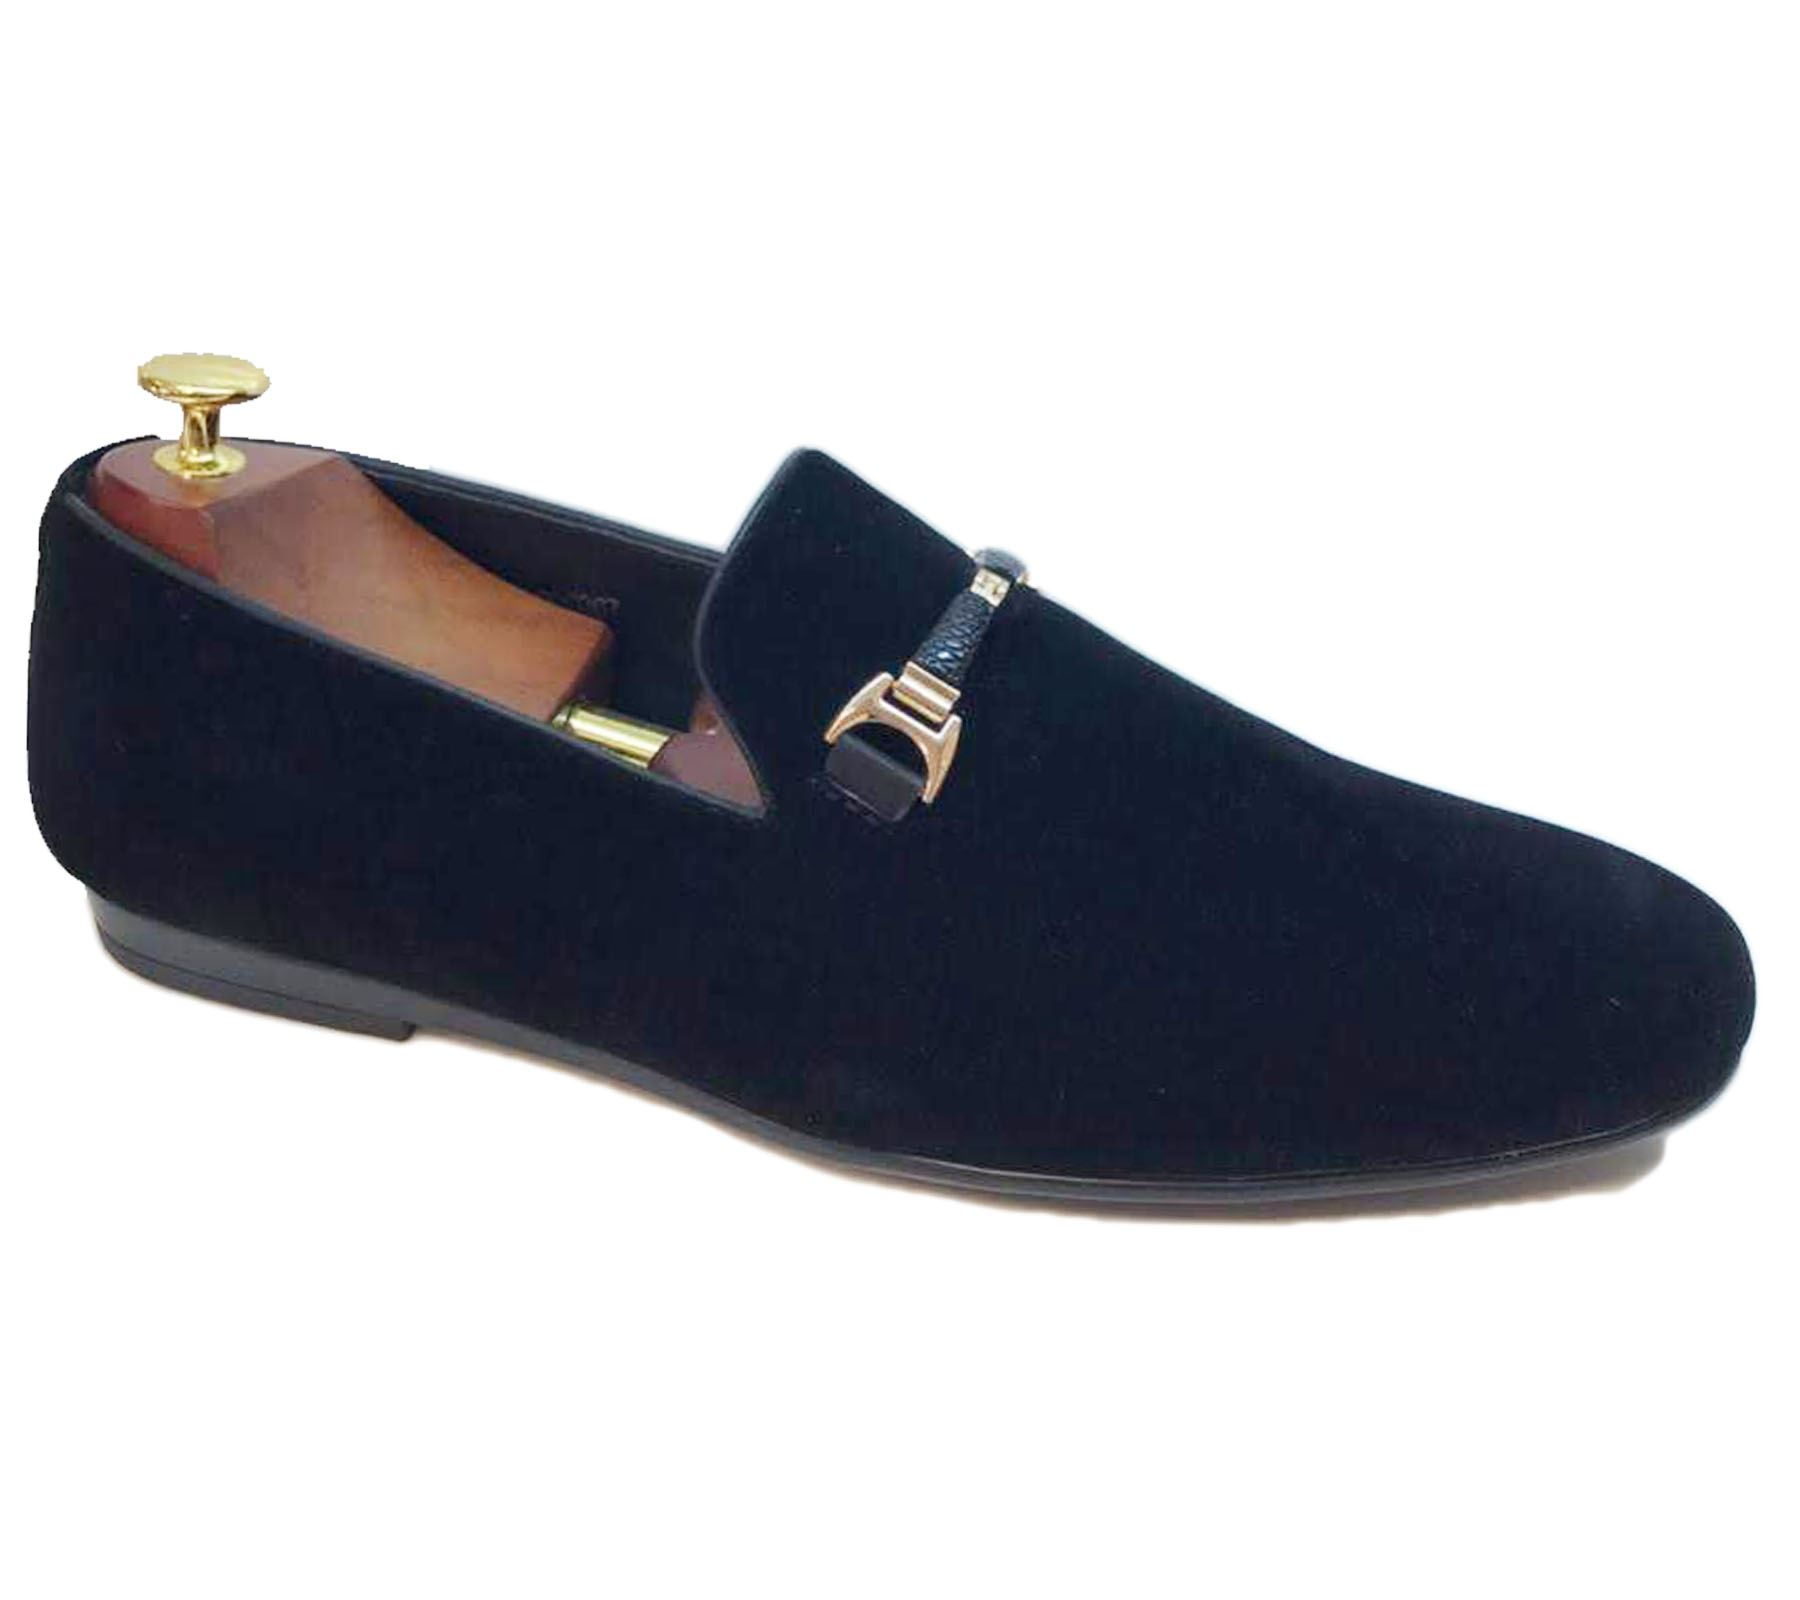 Mens-Loafers-Mocassin-Boat-Deck-Shoes-Flat-Slip-On-Driving-Casual-Smart-Pumps thumbnail 4